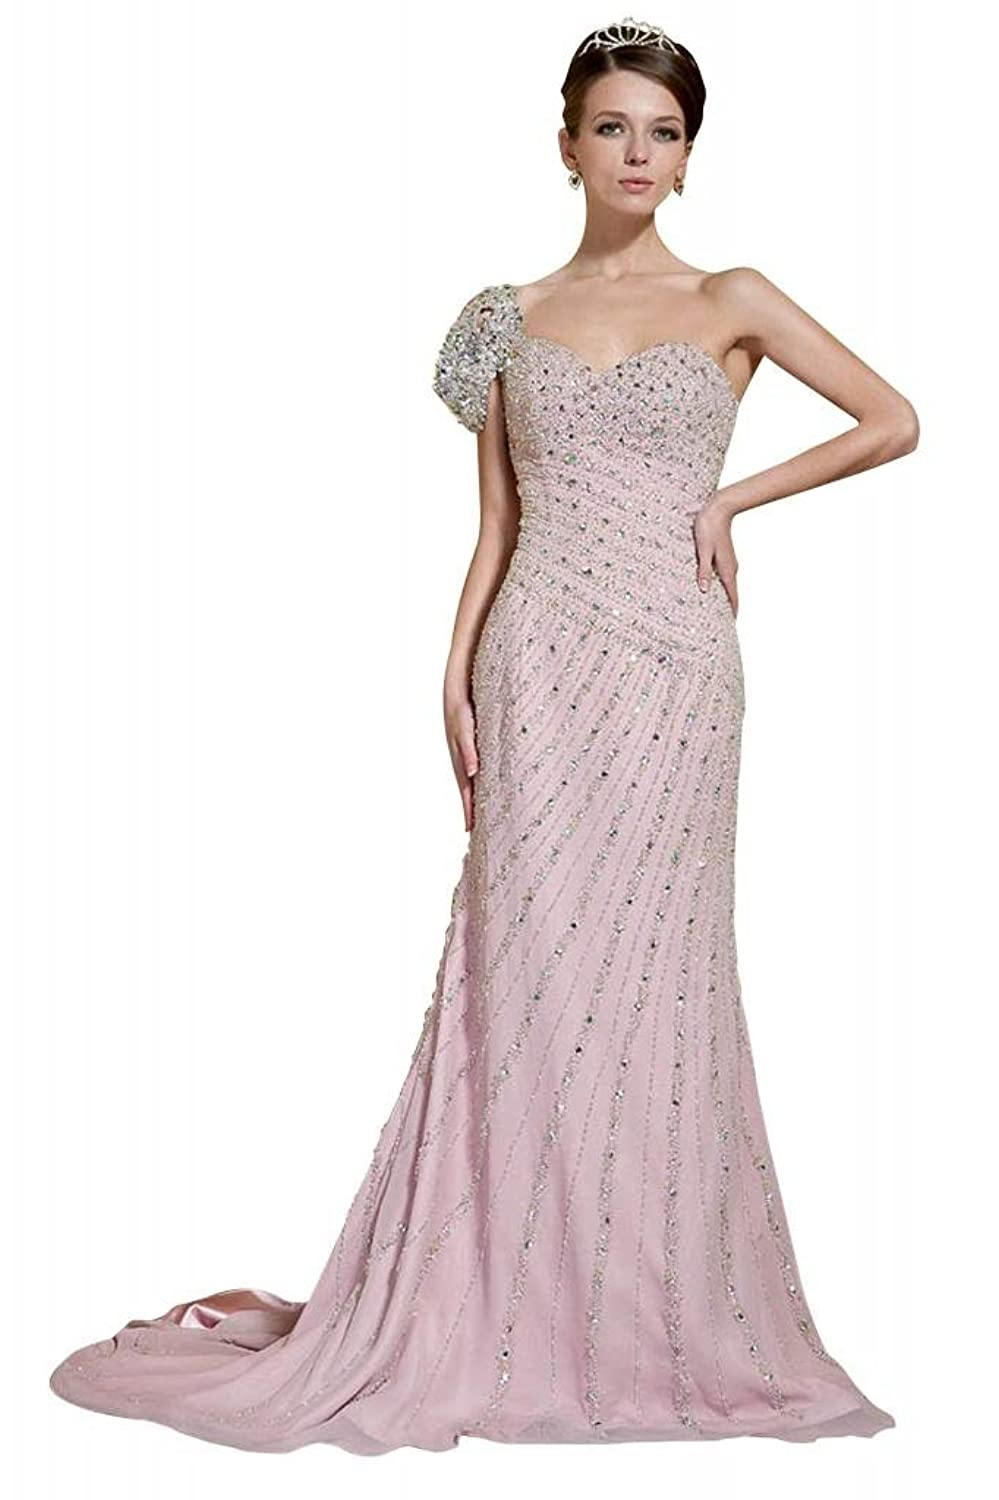 GEORGE BRIDE Goddness Luxury Evening Dress with Shining Sequins